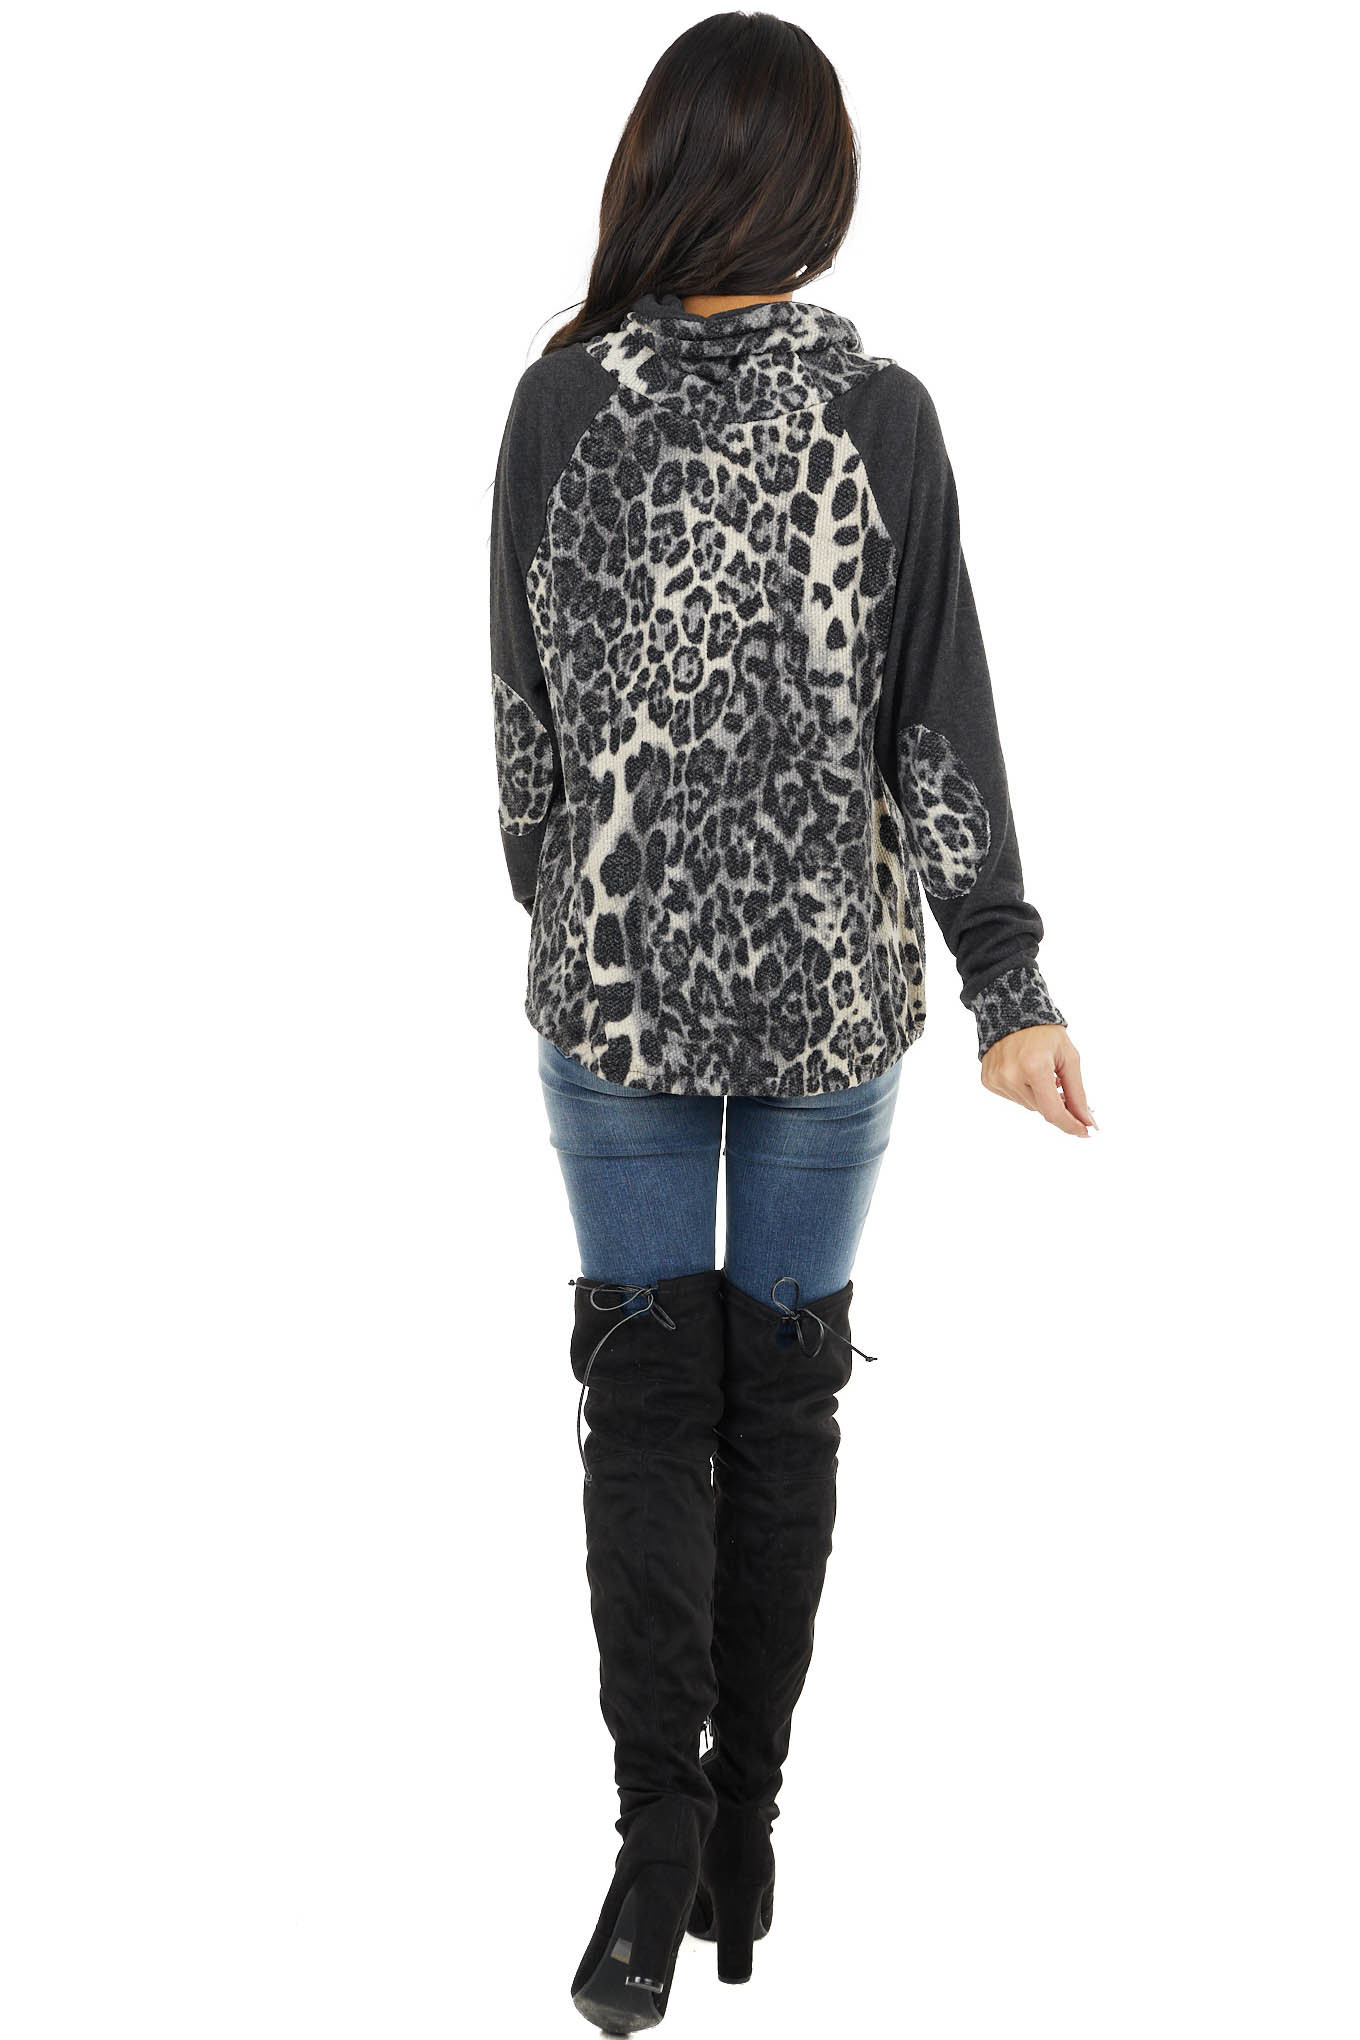 Charcoal and Cream Leopard Raglan Sleeve Cowl Neck Top